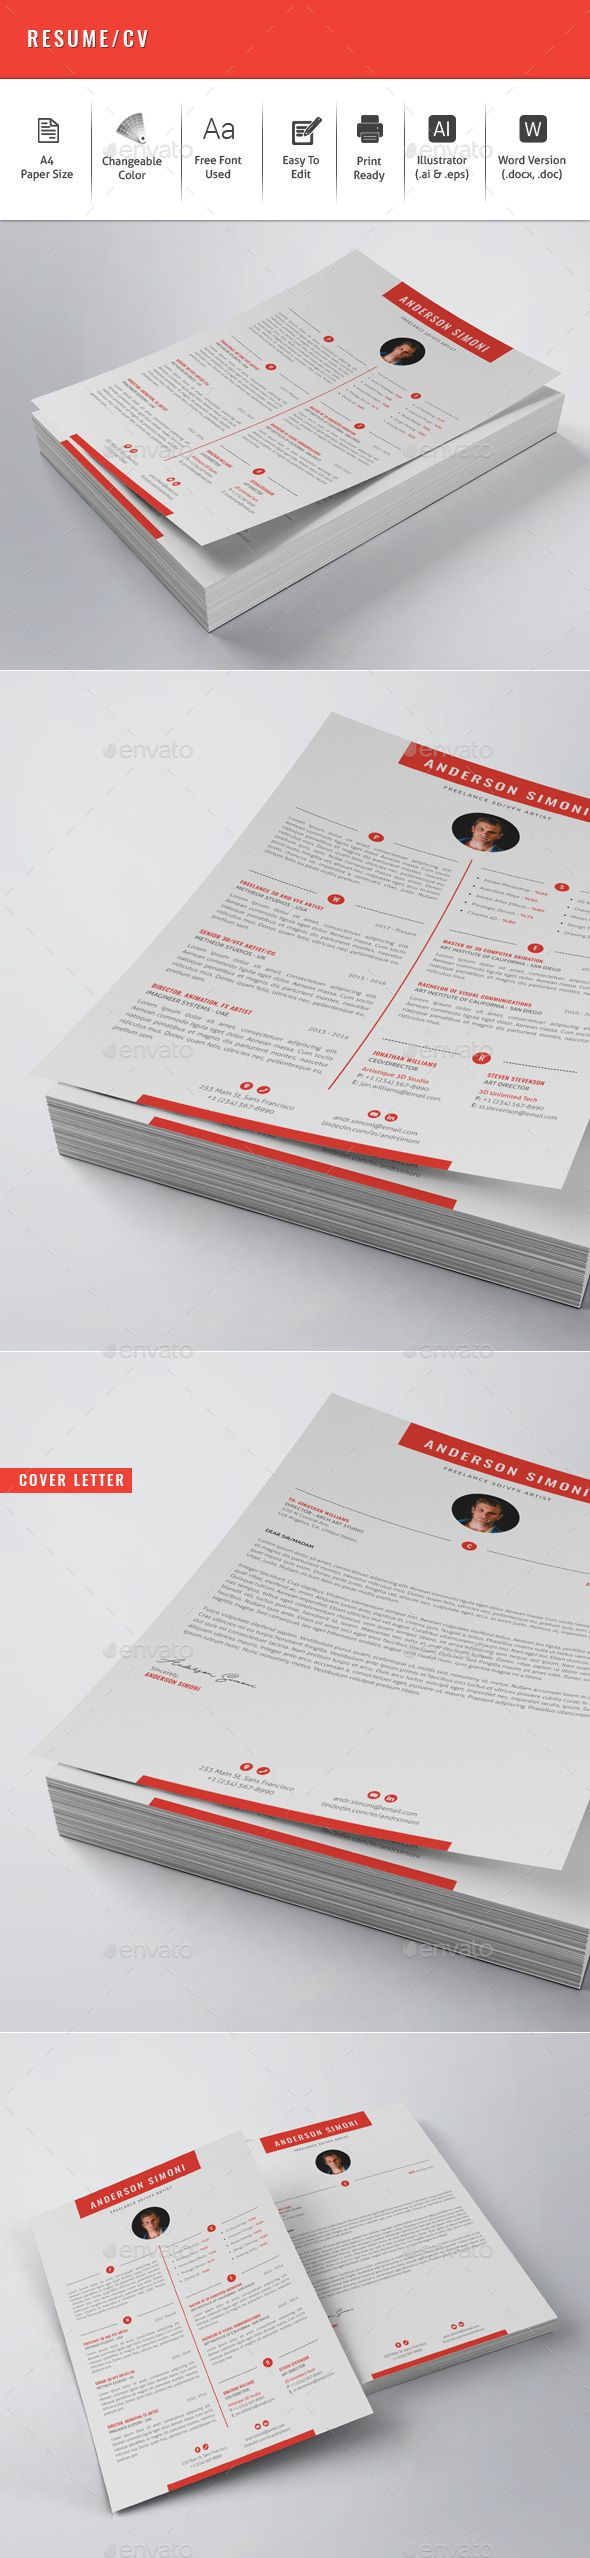 Resume Pdf Or Word Download%0A Resume   CV Template Vector EPS  AI  MS Word